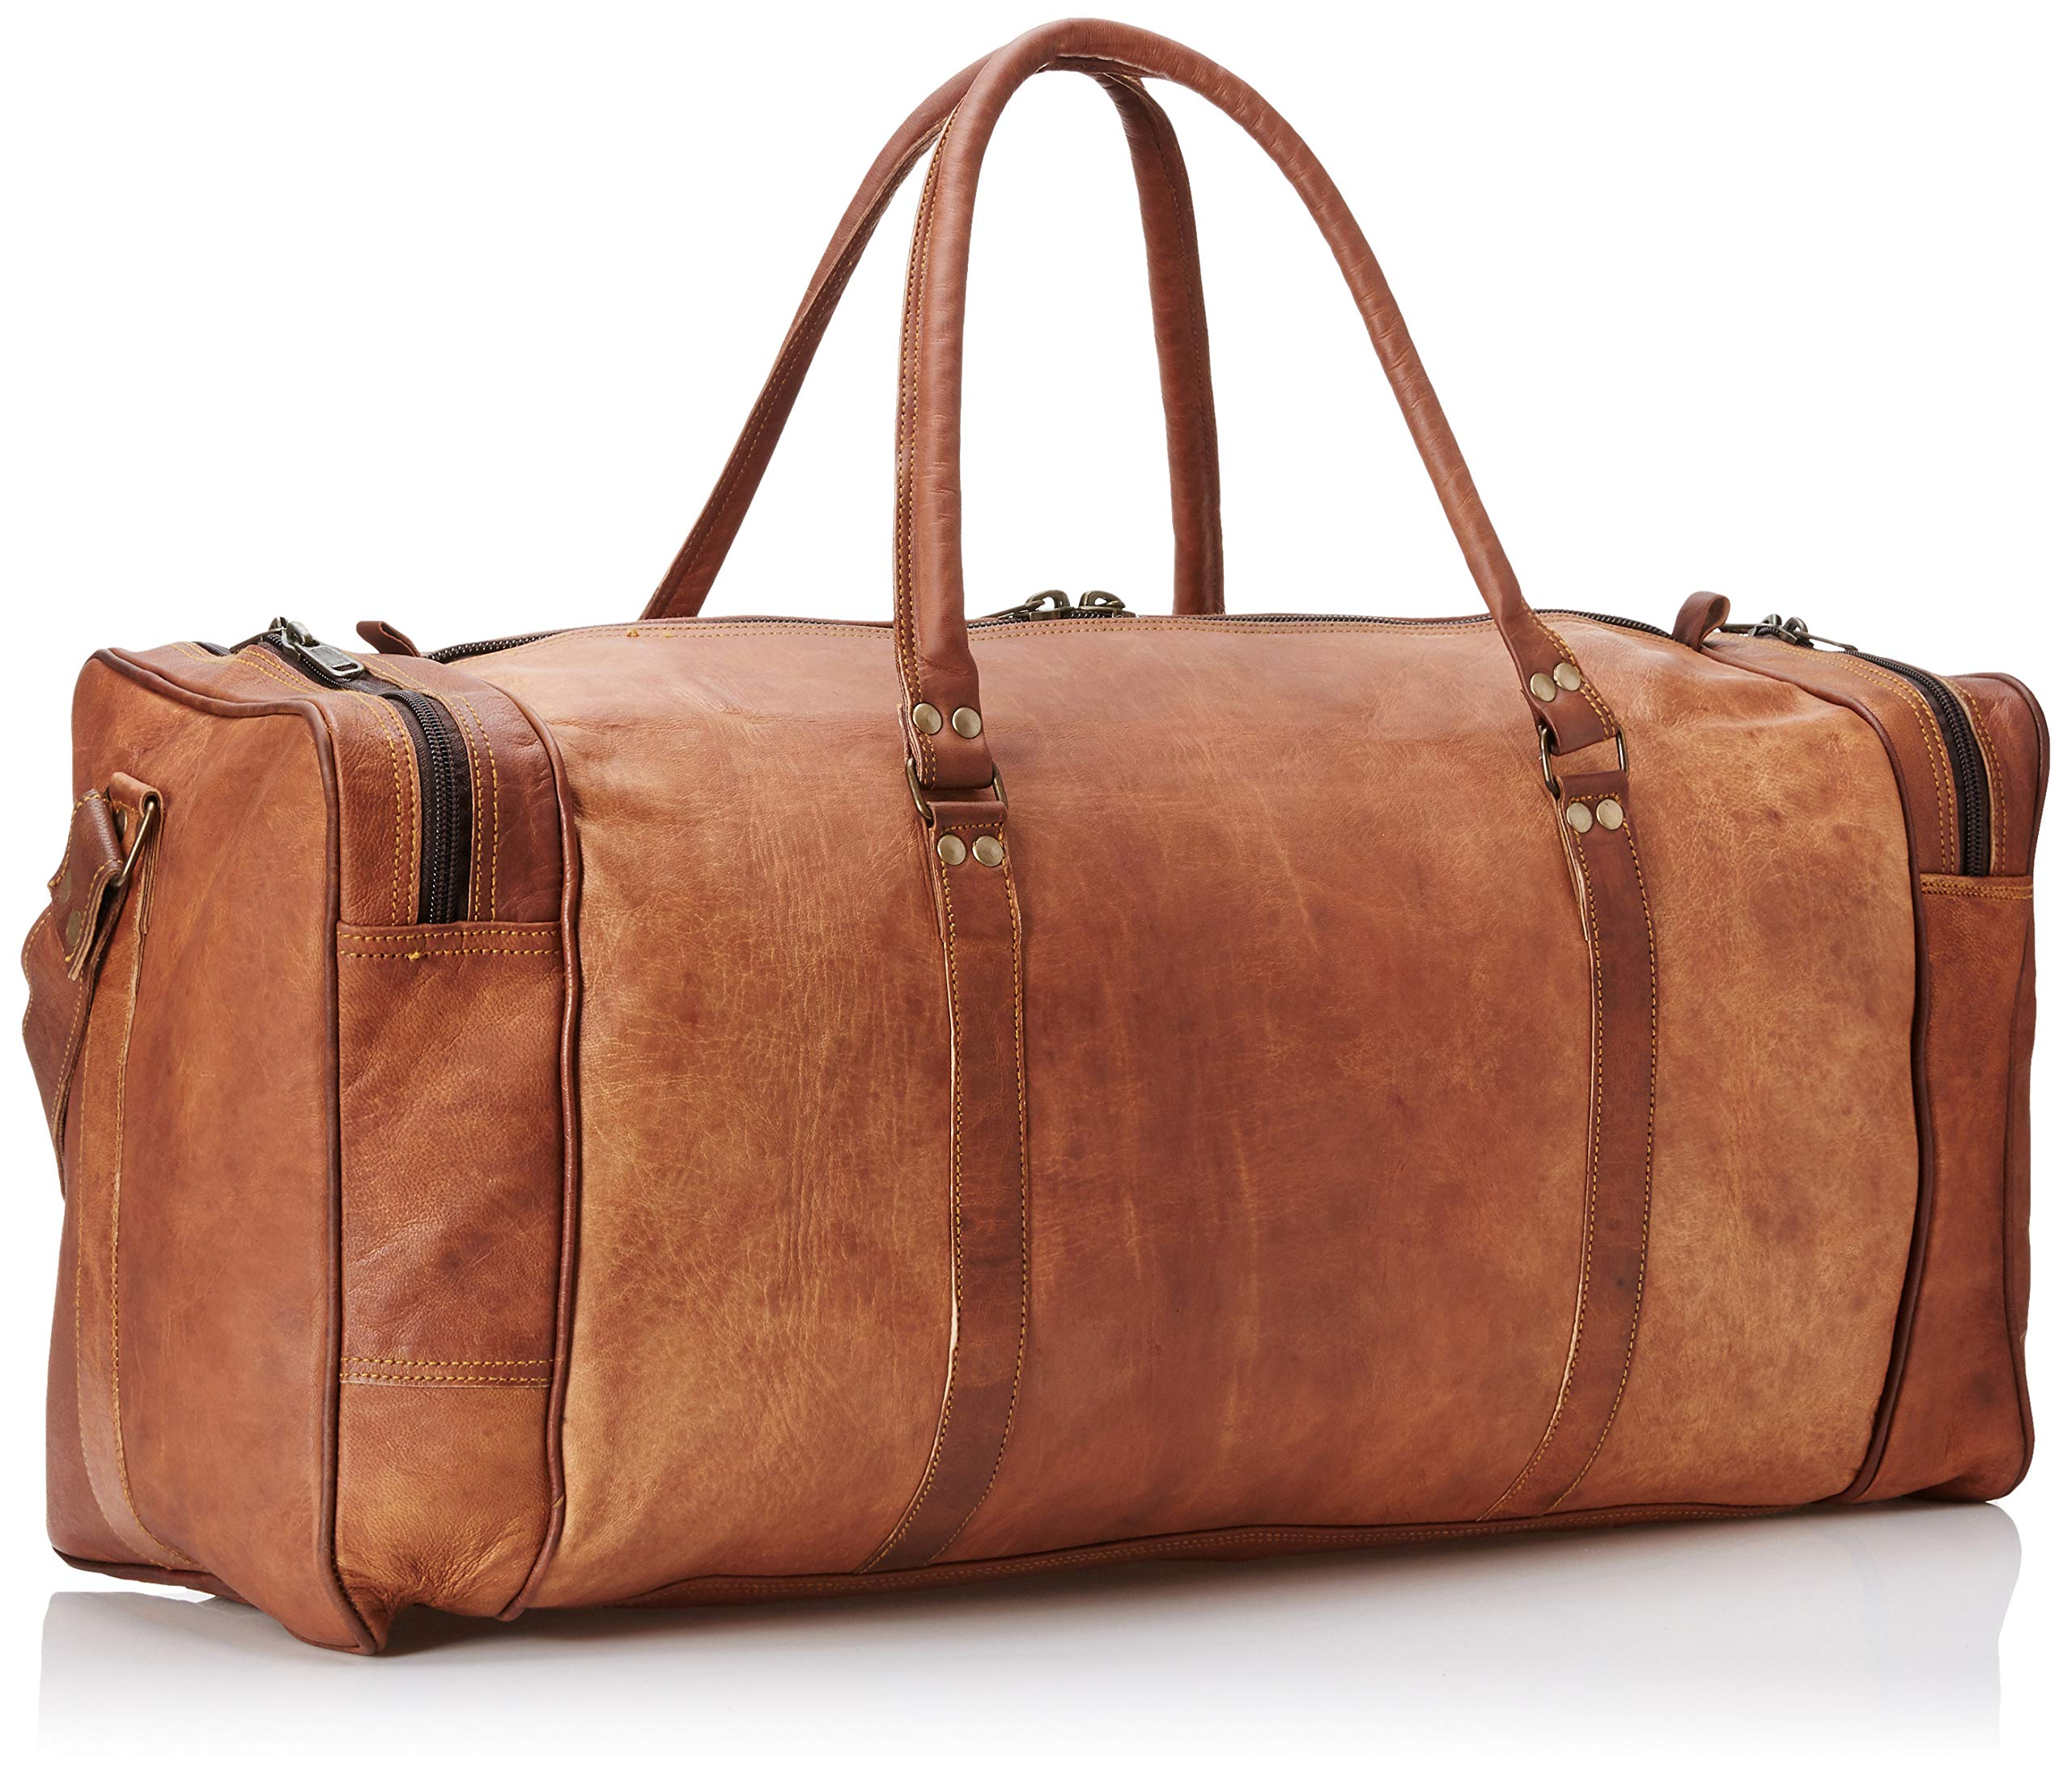 Leather 24 Inch Square Duffel Travel Gym Sports Overnight Weekend Leather Bag by Ruzioon (Image #2)